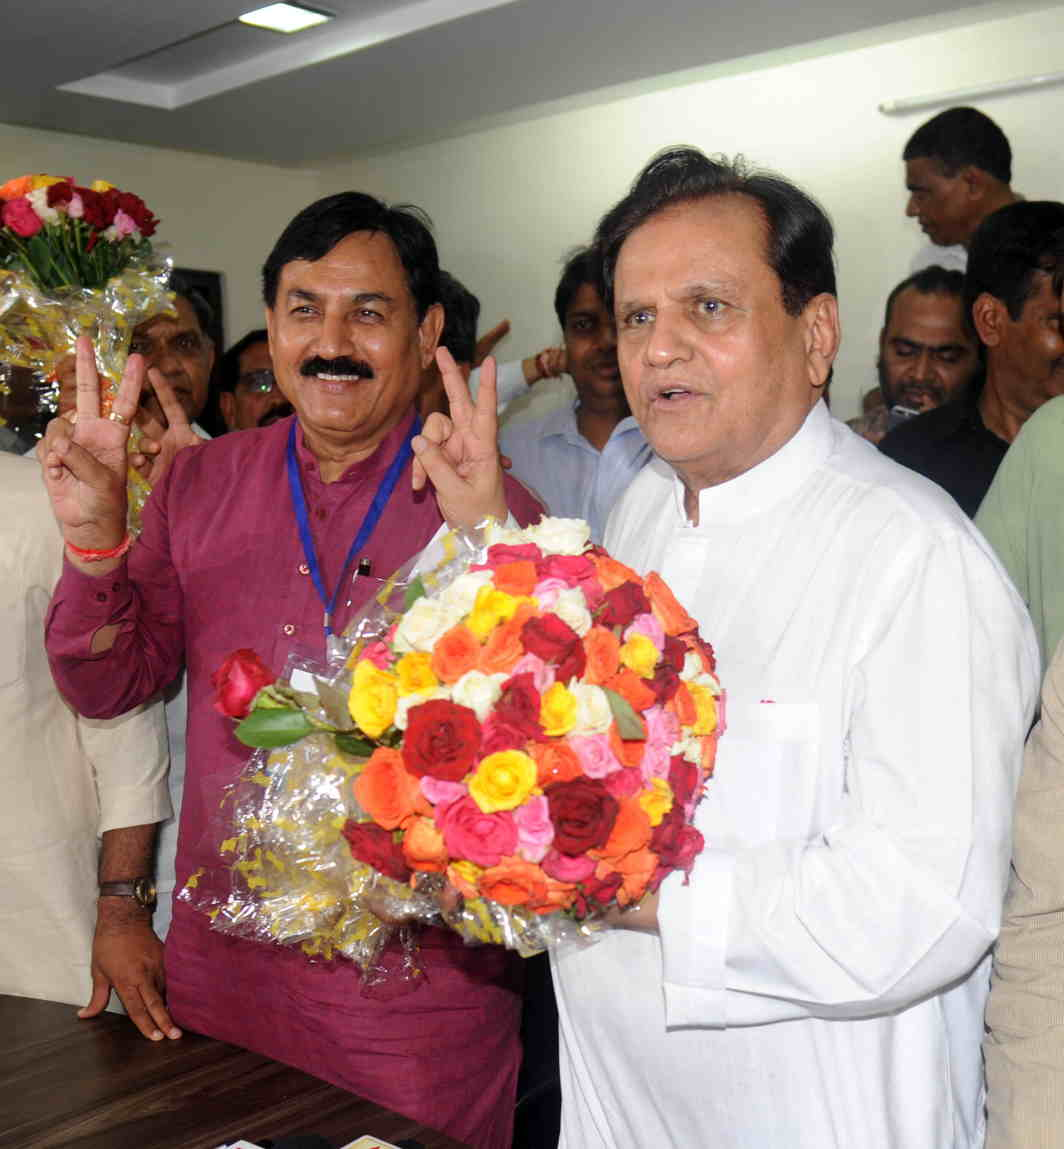 THE TORTOISE WINS: Gujarat Congress president Bharatsinh Madhavsinh Solanki and Congress leader Ahmed Patel display the victory sign after winning the Rajya Sabha election in Ahmedabad, UNI